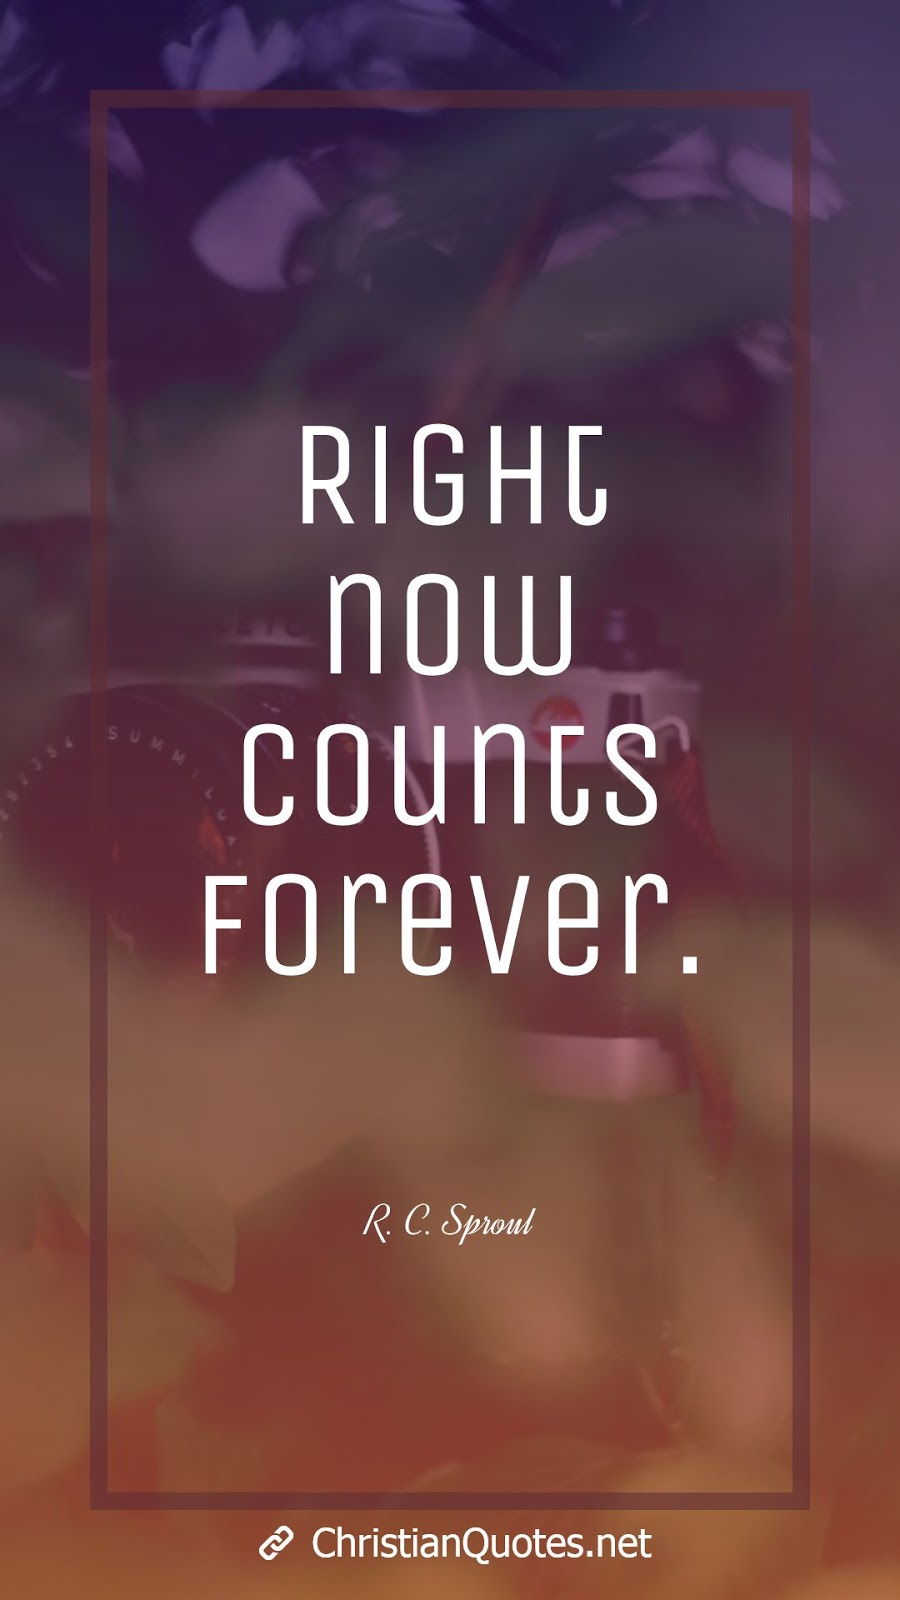 Right now counts forever.